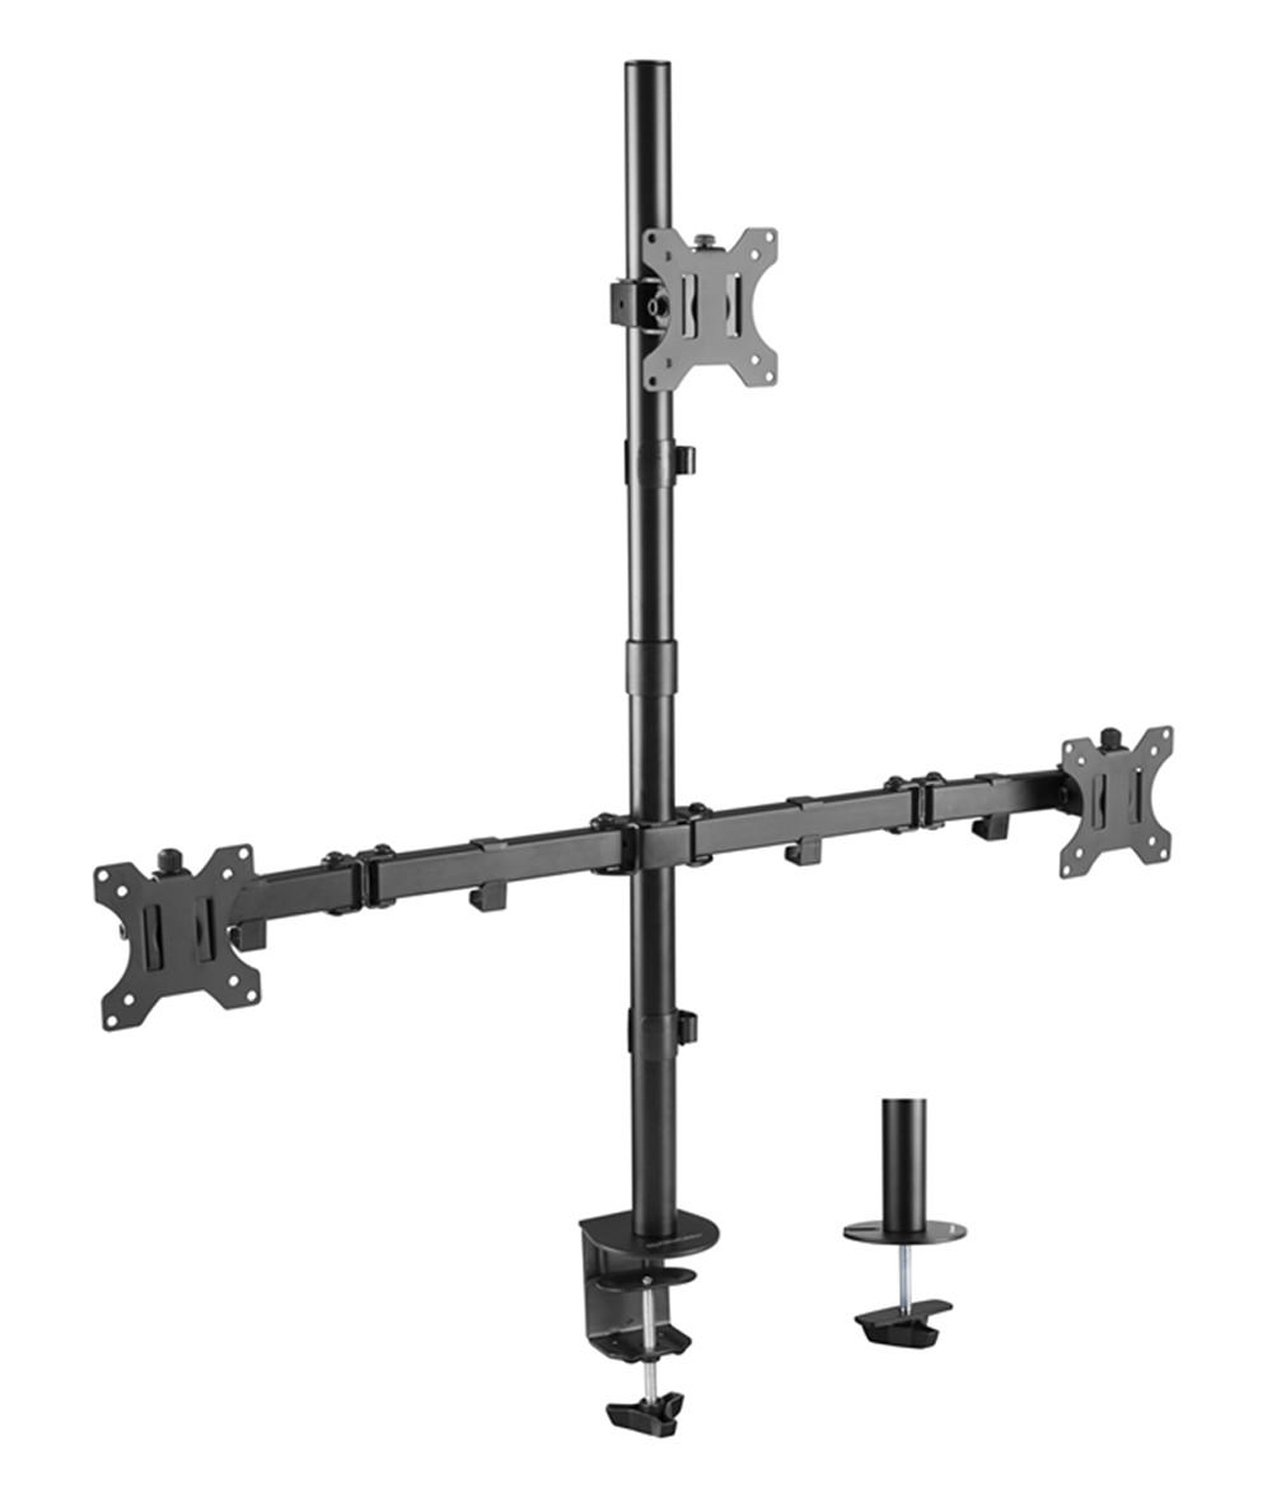 PrimeCables Triple Monitor Desk Mount Stand for 13 - 32 LCD LED Screen Display - 3 Heavy Duty Full Motion Monitor Arm with VESA 75x75 and 100x100mm Patterns (Sturdy, Ergonomics) Cab-LDT12-C036